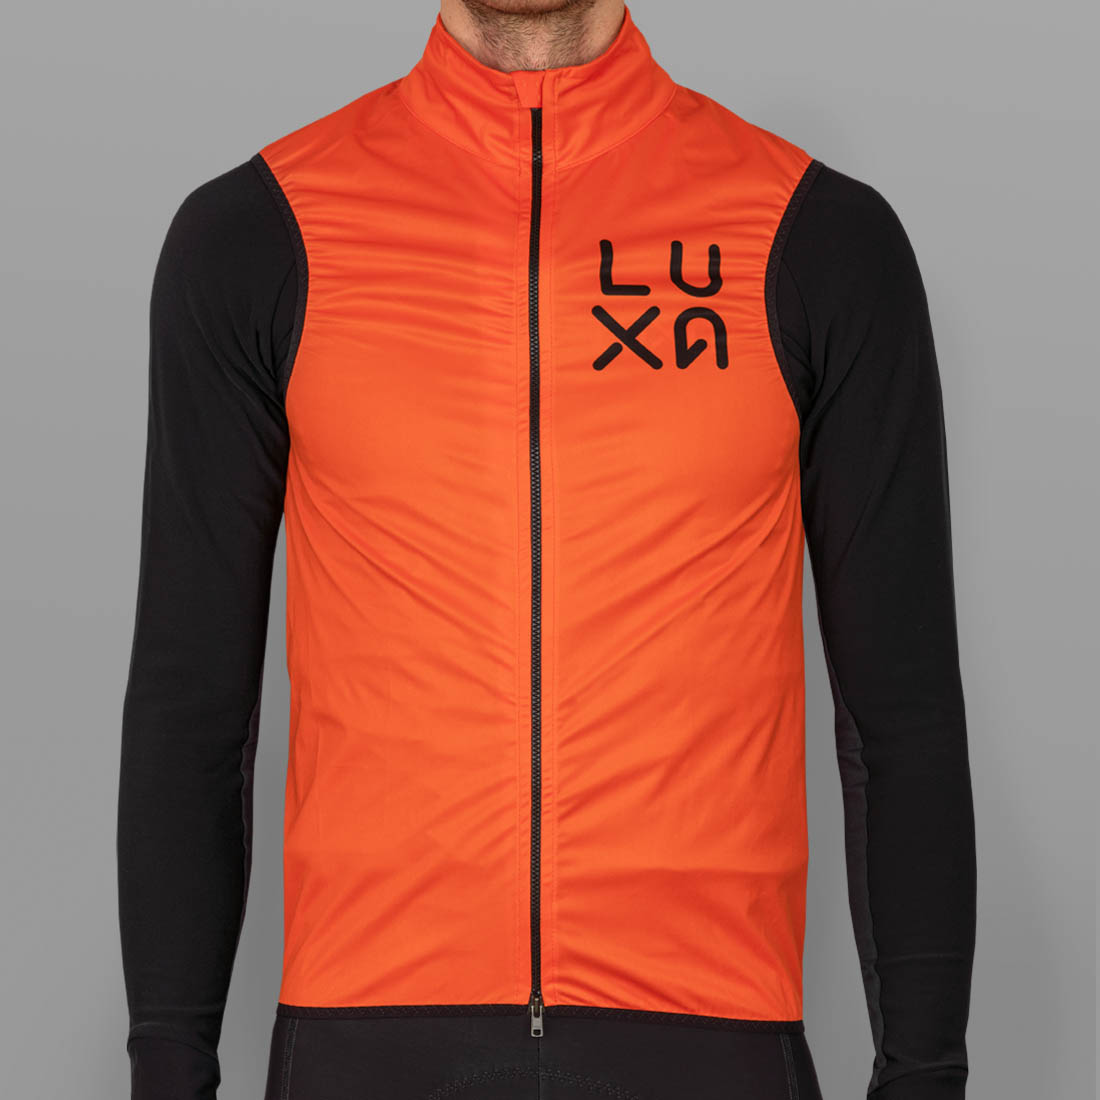 vision gilet made by Luxa in orange windproof fabric in europe